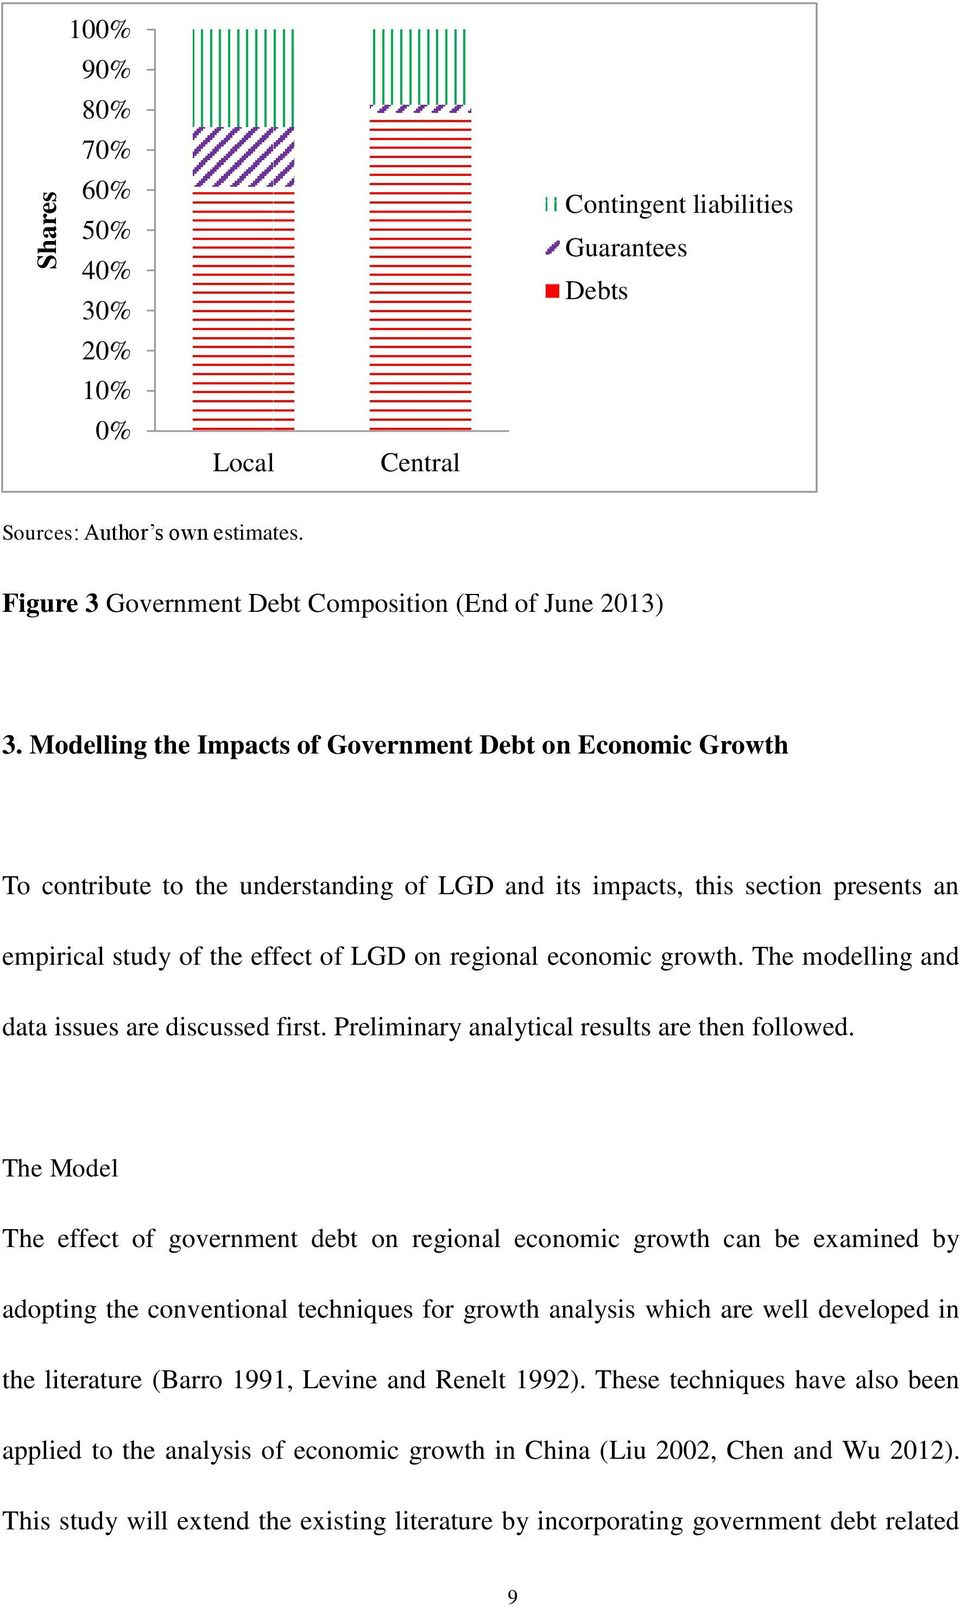 economic growth. The modelling and data issues are discussed first. Preliminary analytical results are then followed.